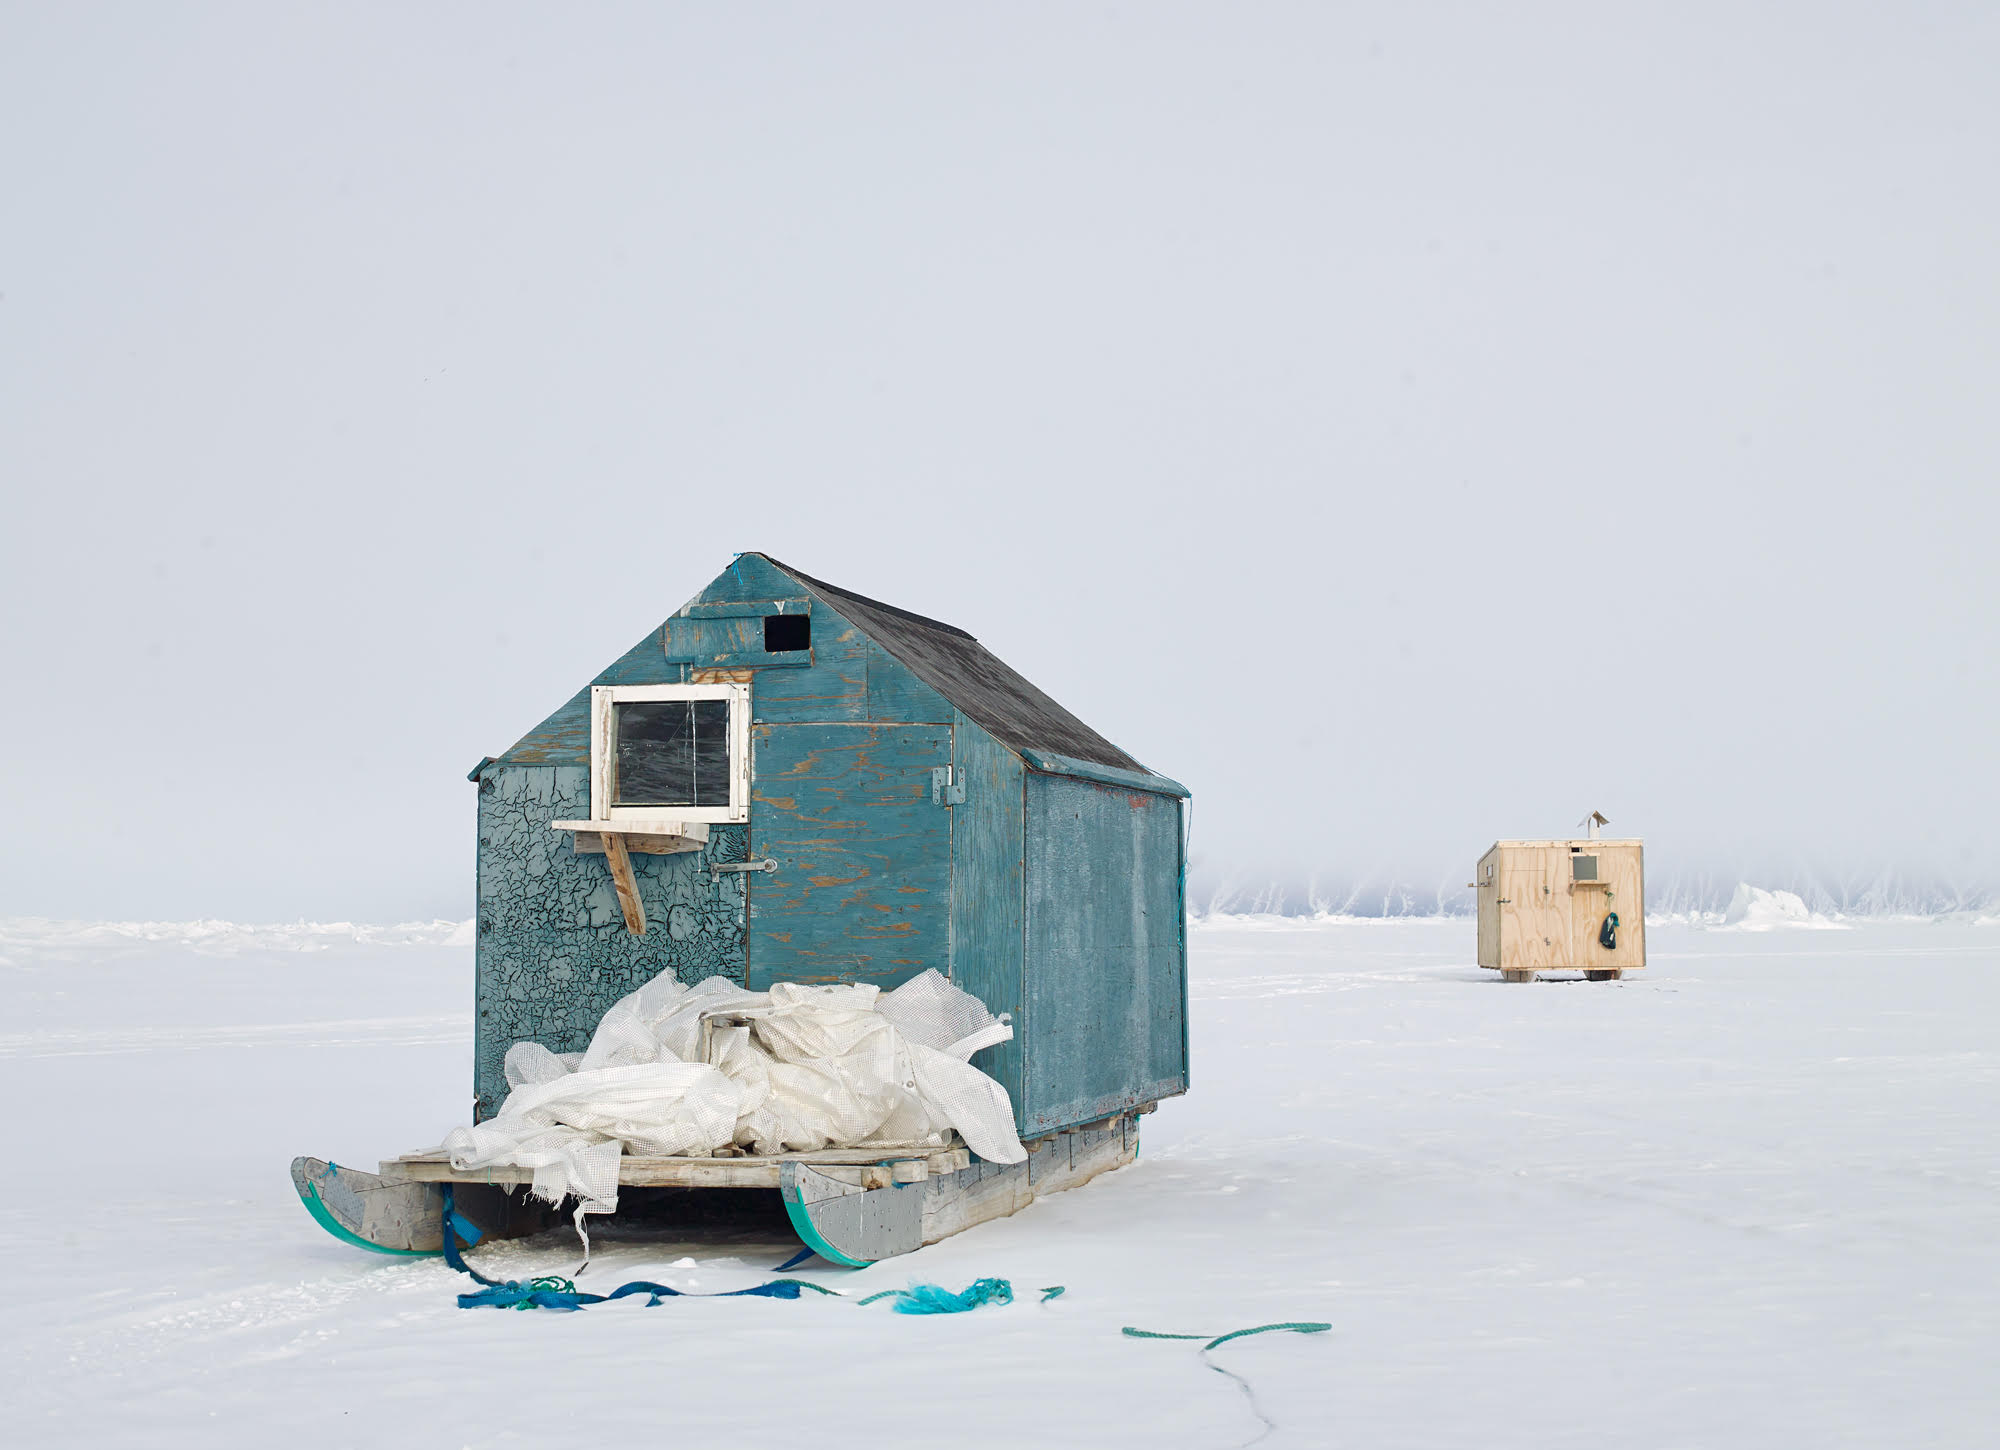 """""""Sila Fishing Houses"""", © Corina Gamma,  Fishing Huts on the Sea Ice #1 , Qaanaaq, Greenland 2018 [Fishing huts are used as temporary shelter during ice fishing. They are transported by sled after the sea ice has firmly formed, and brought to the sites for the fishing season.]"""